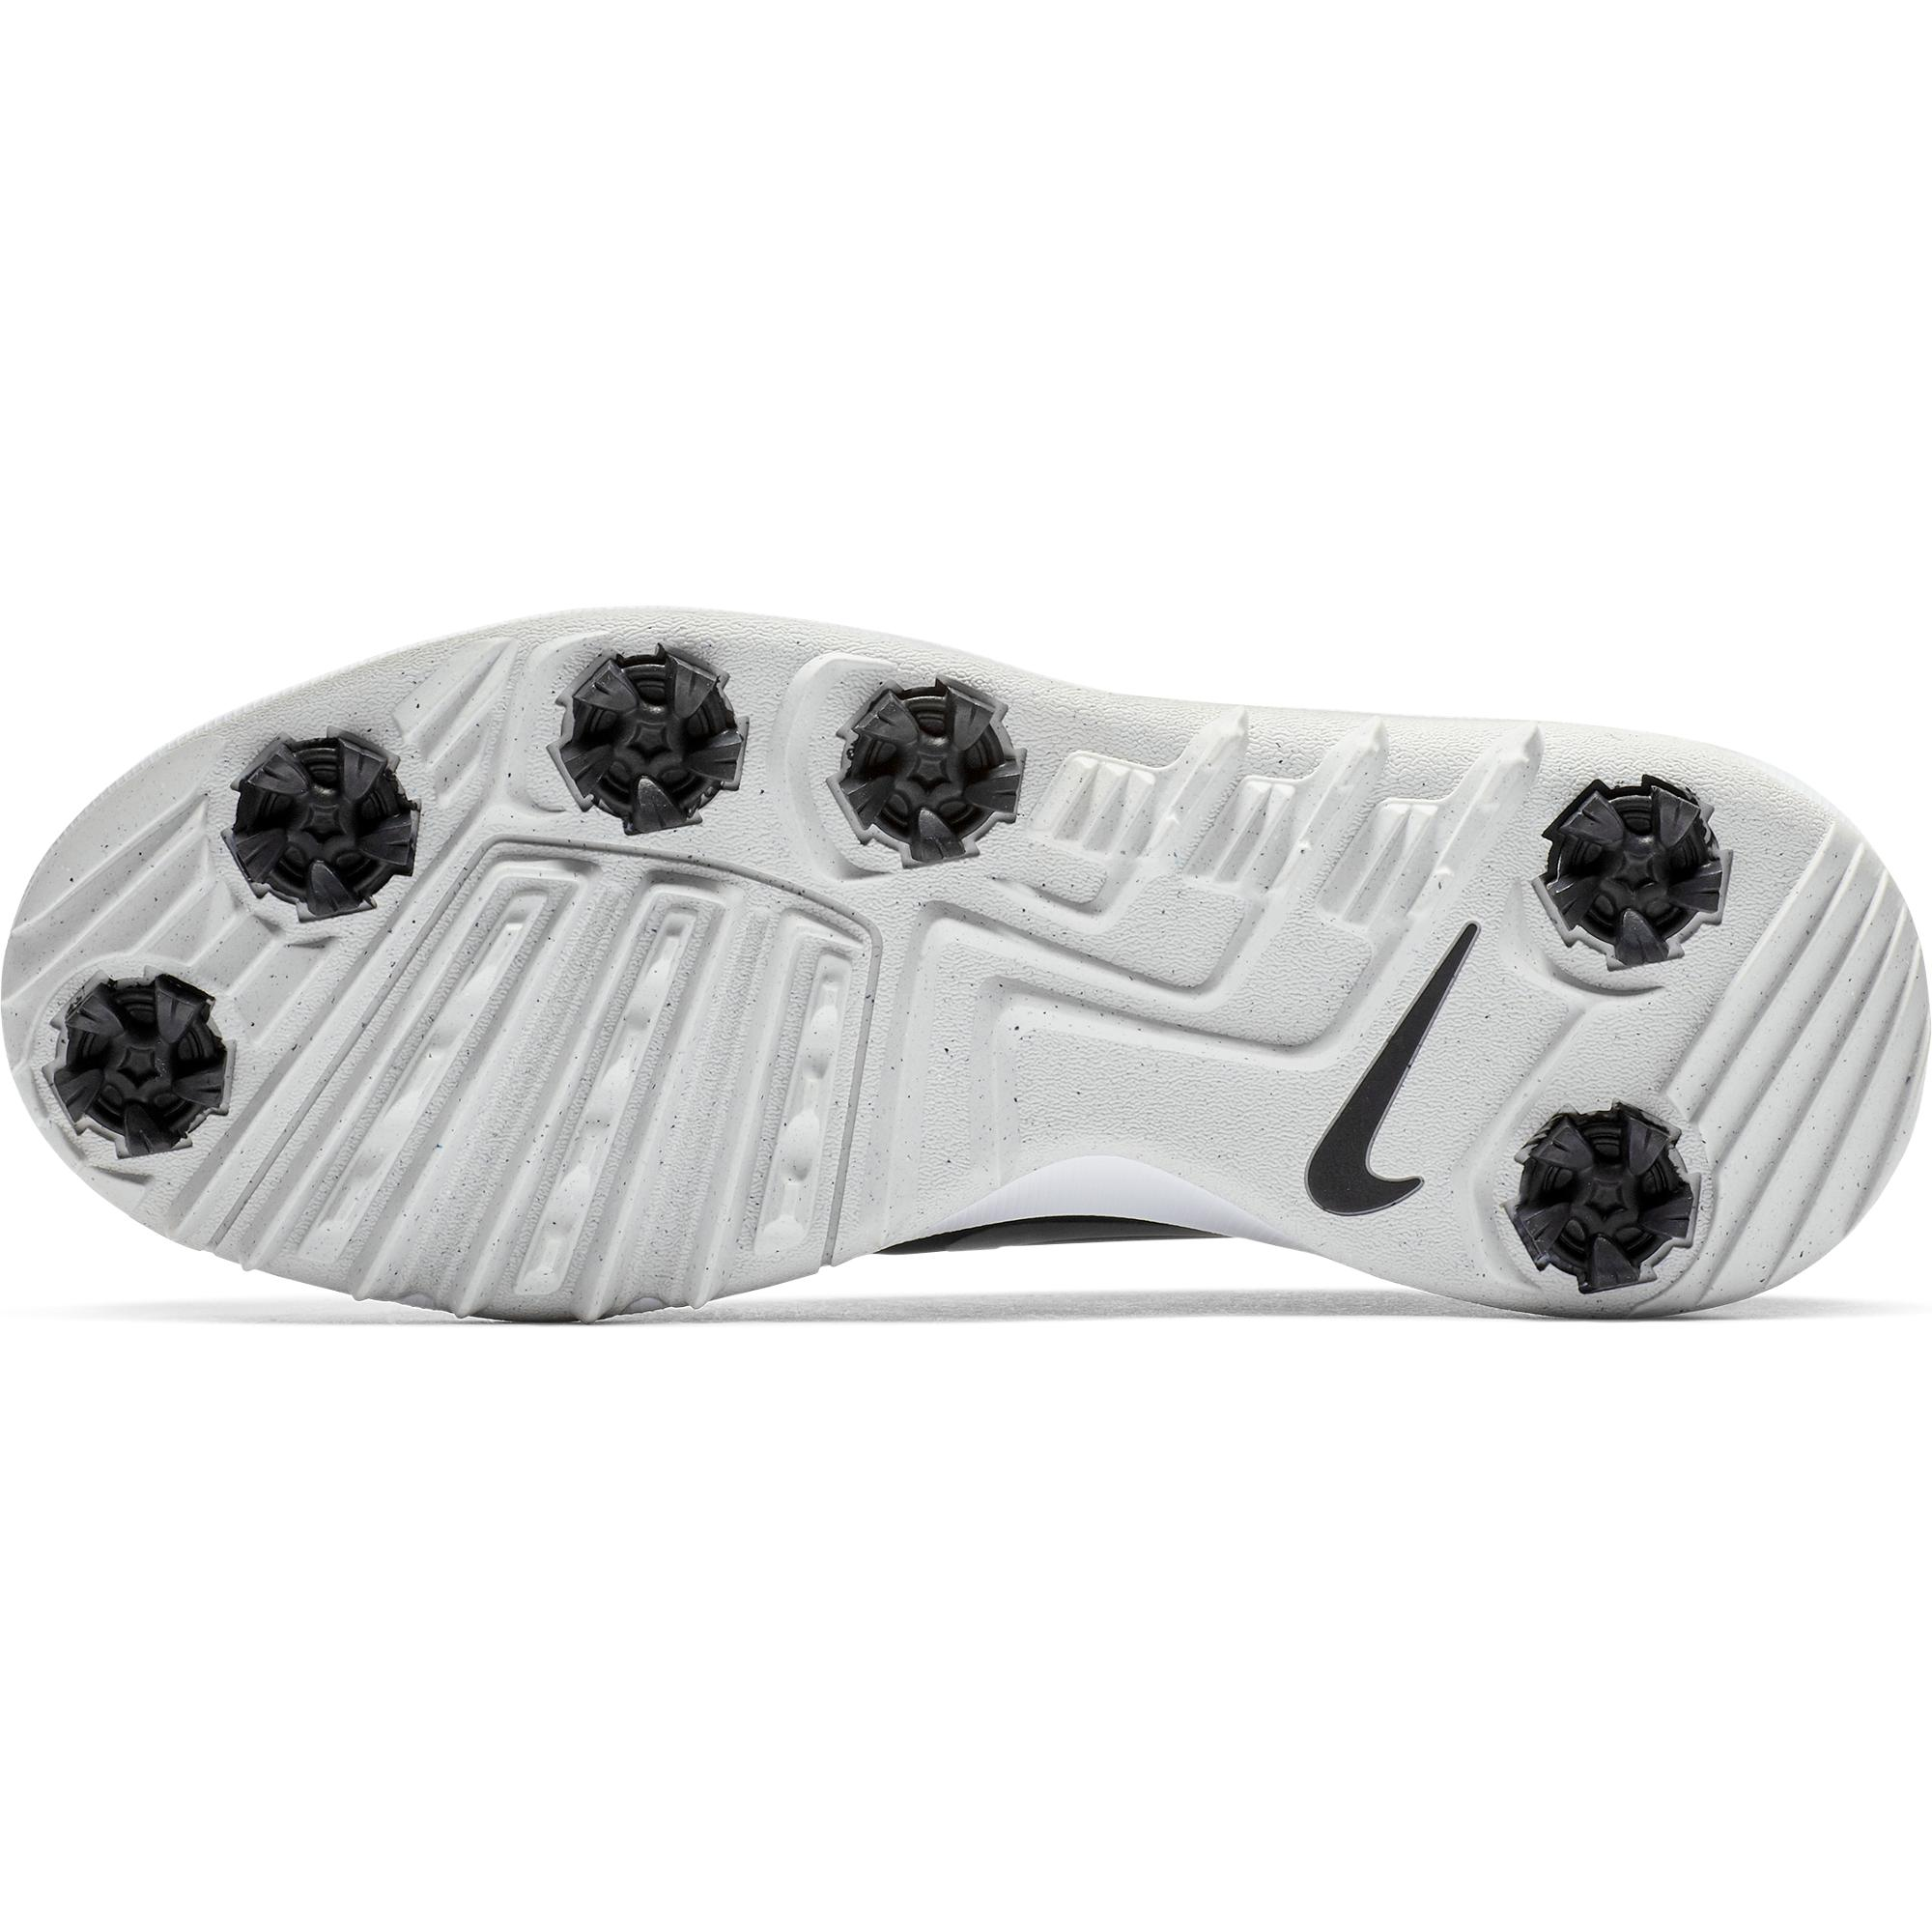 Junior Vapor Pro Spiked Golf Shoe - Black/Silver